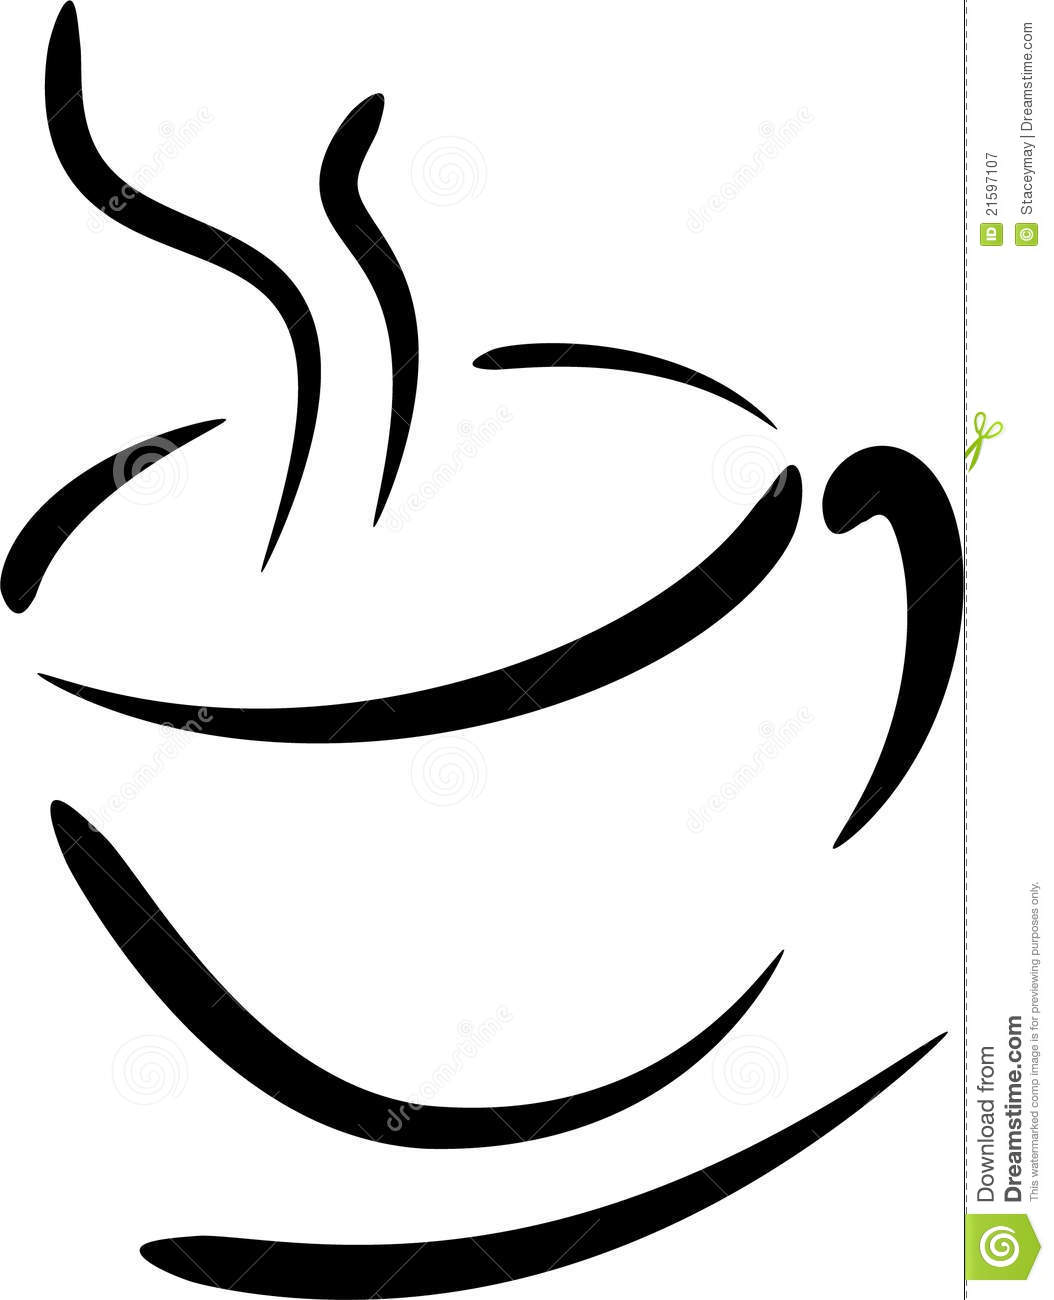 Coffee Cup Illustration Stock Illustrations 210 142 Coffee Cup Illustration Stock Illustrations Vectors Clipart Dreamstime